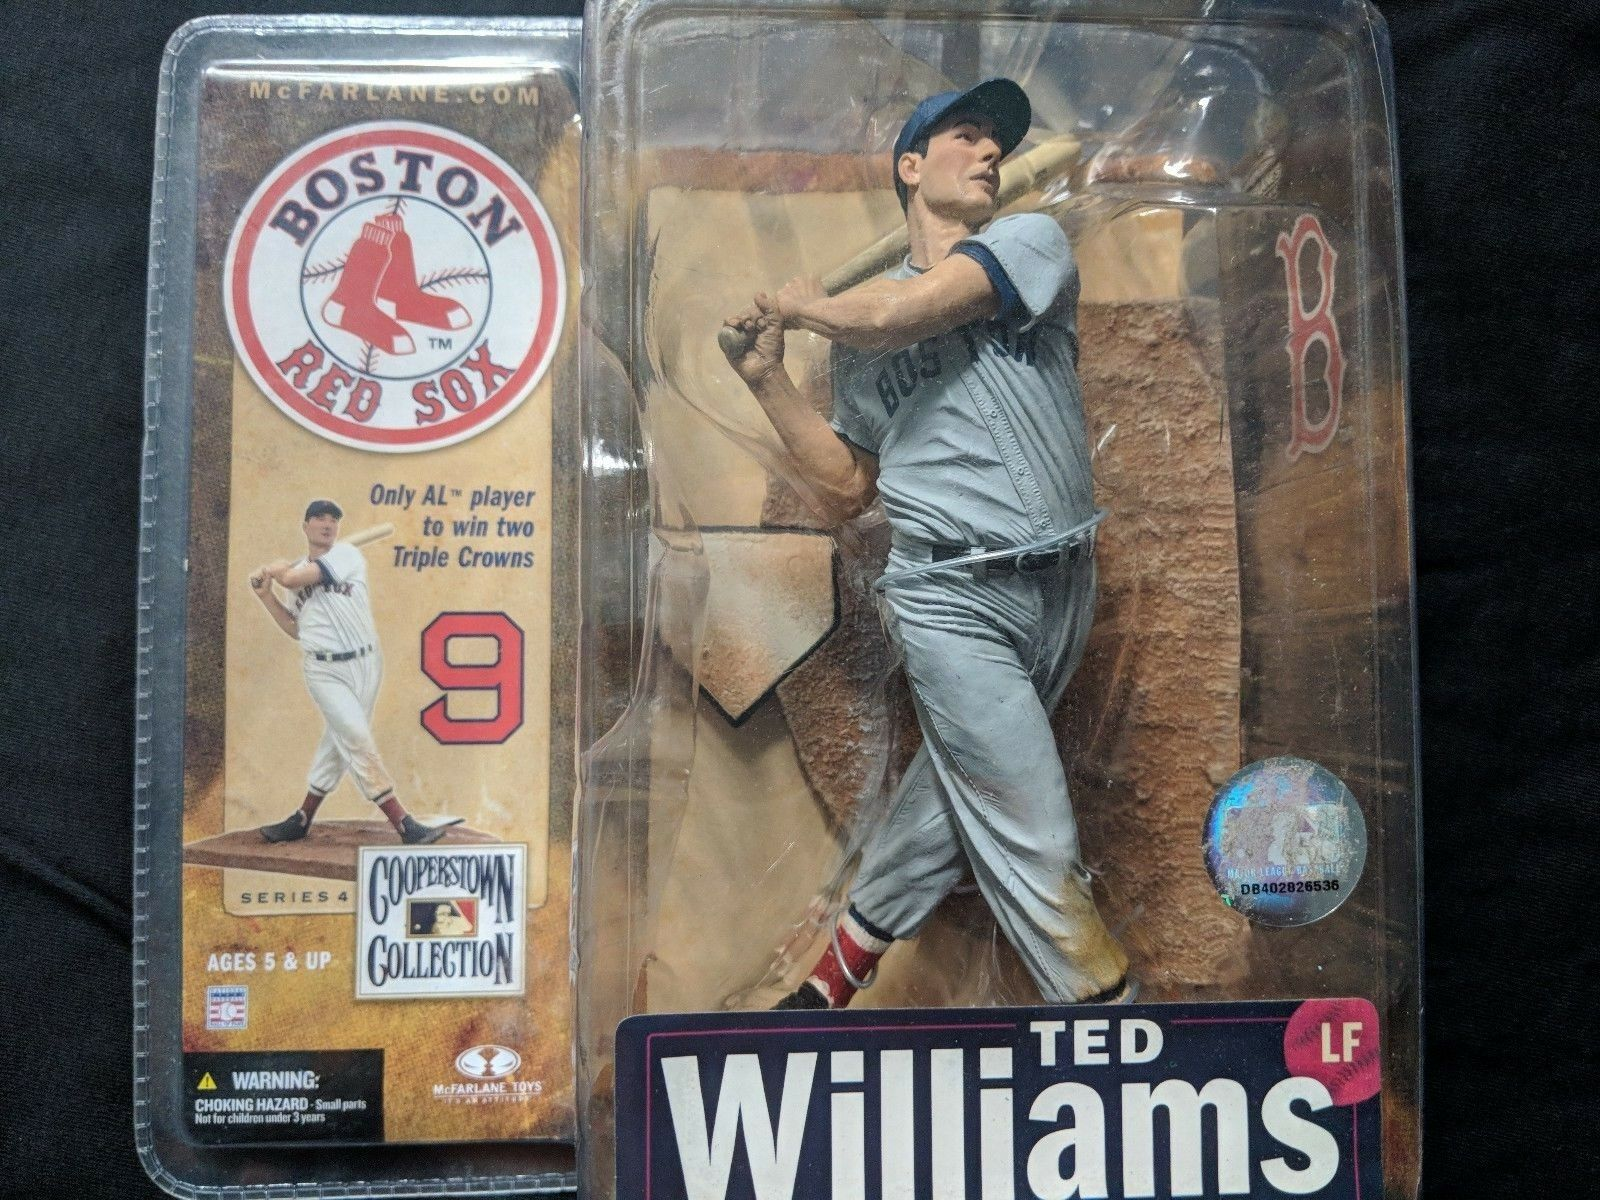 Ted Williams variant McFarlane figure Boston Red sox Cooperstown collection